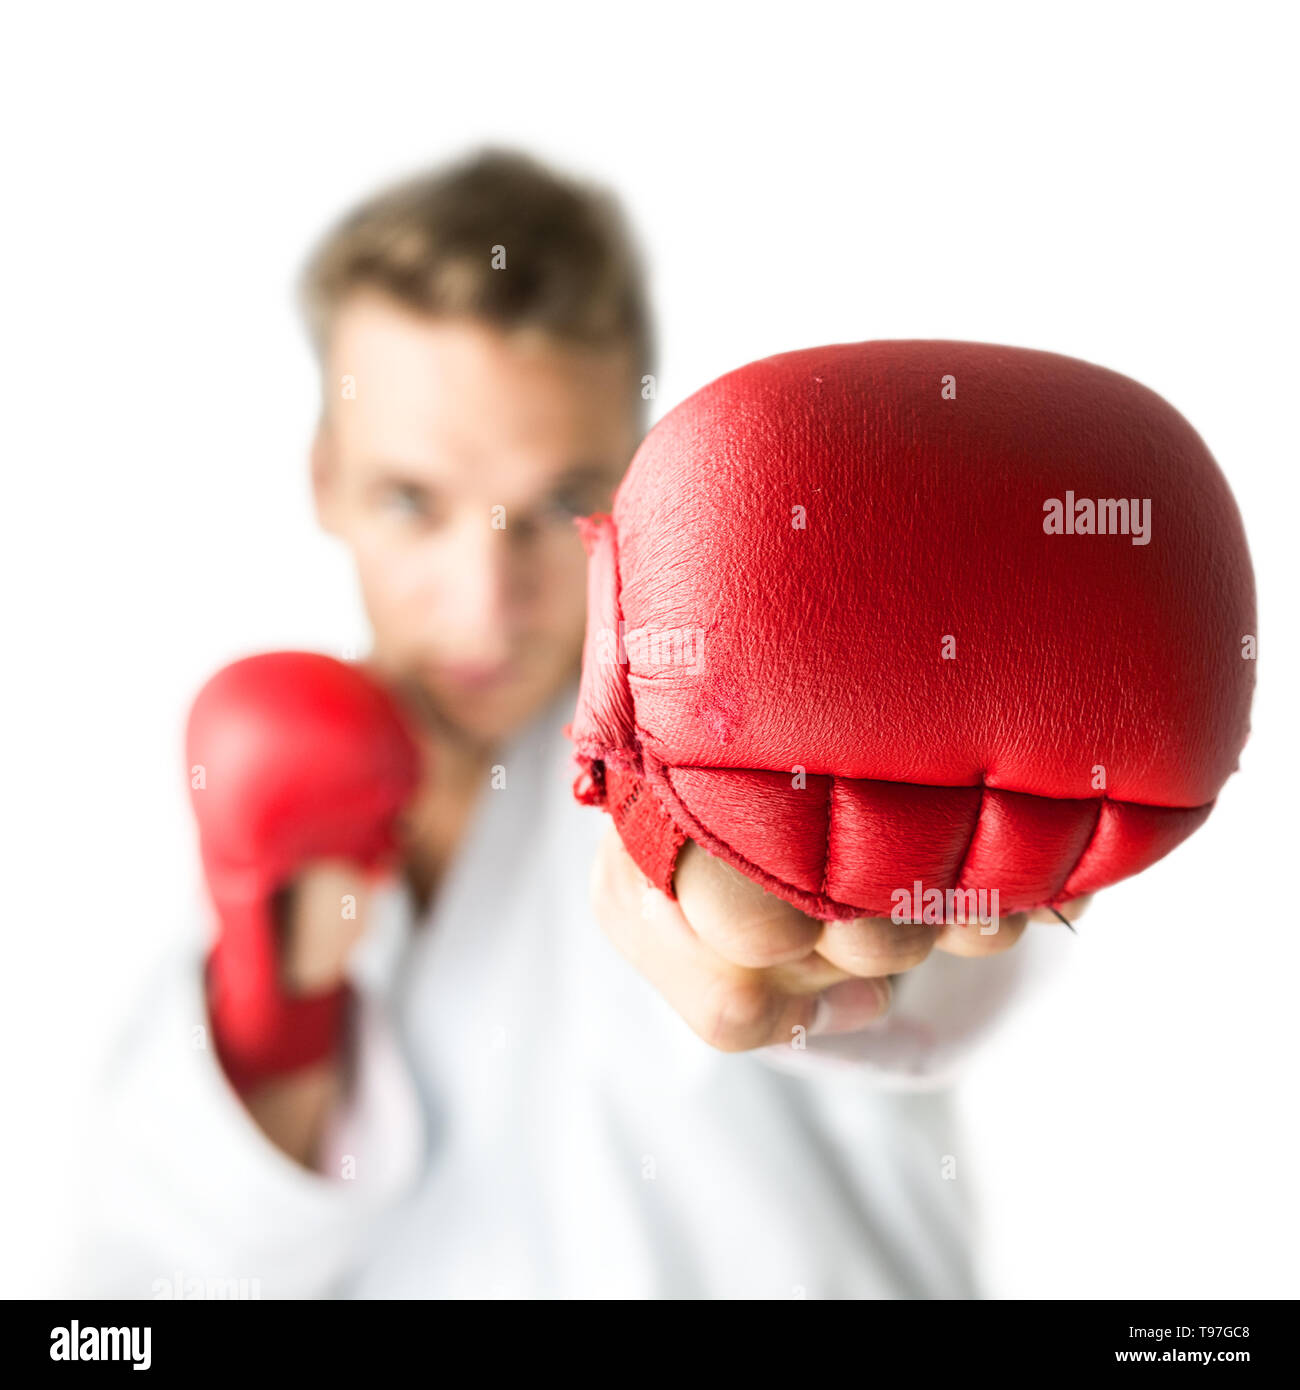 Kick boxer with red boxing gloves performing a martial arts punch. Isolated  over white background. - Stock Image